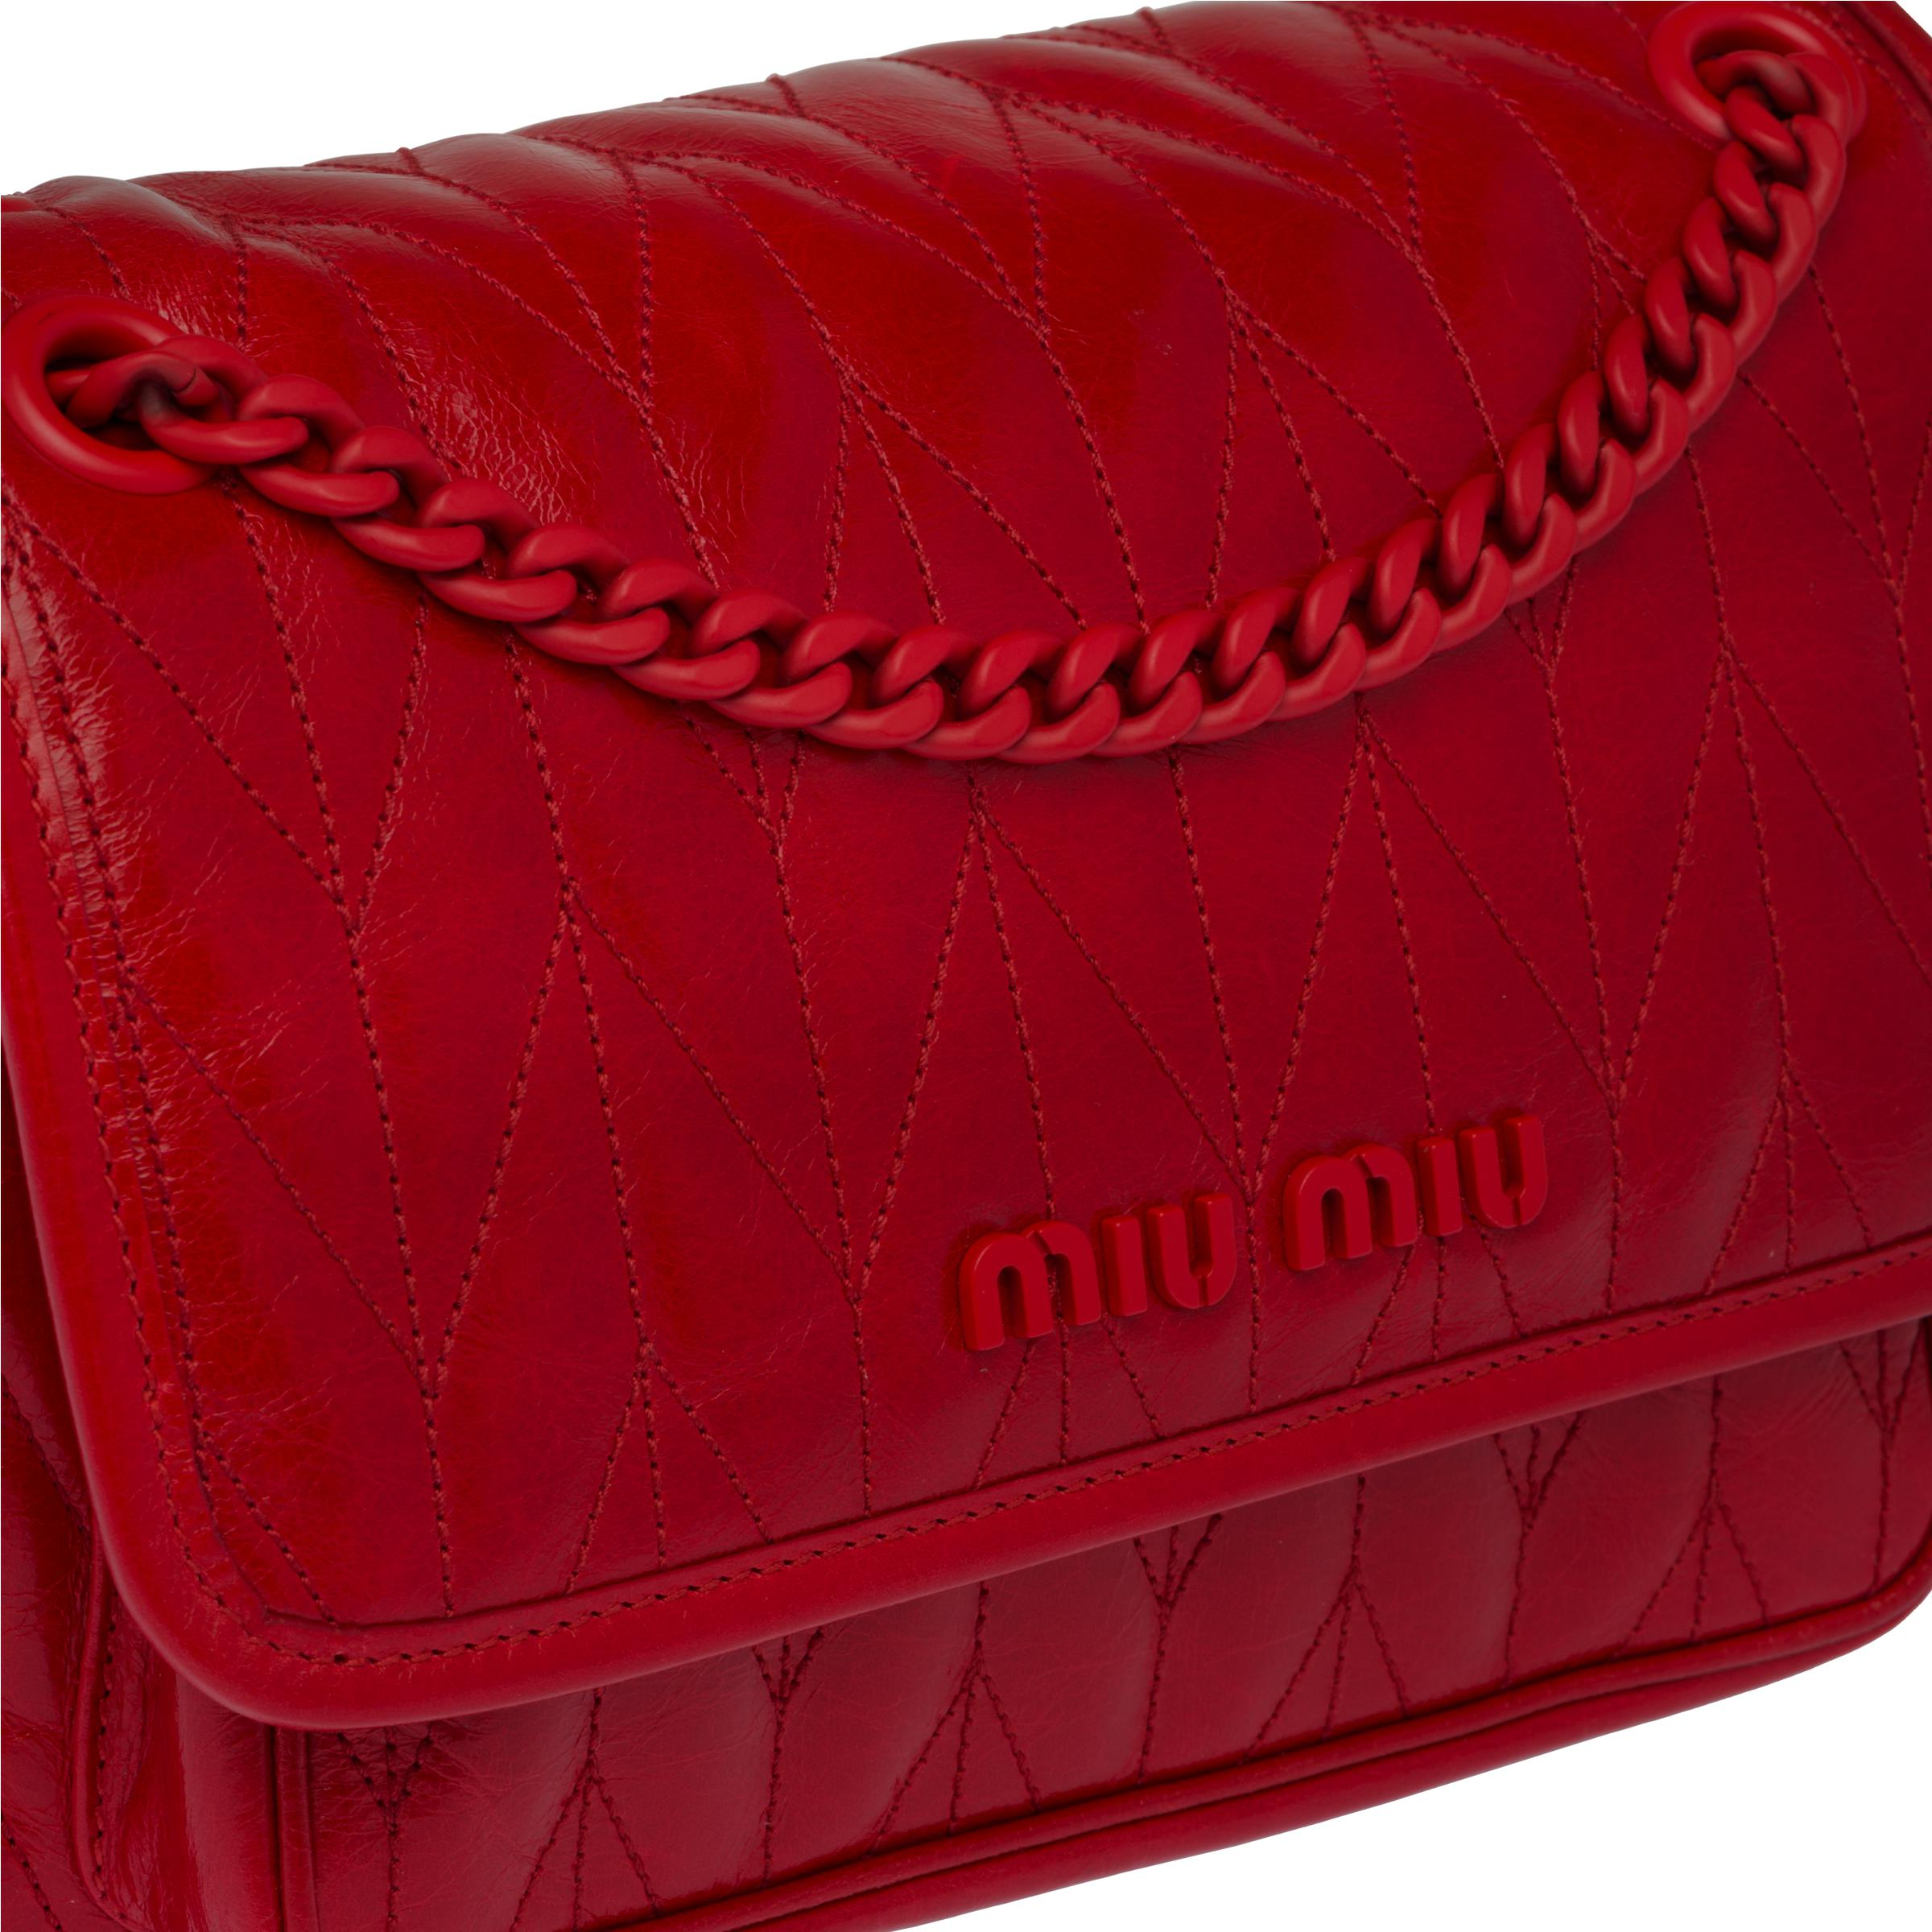 Quilted Shiny Leather Shoulder Bag Women Red 5